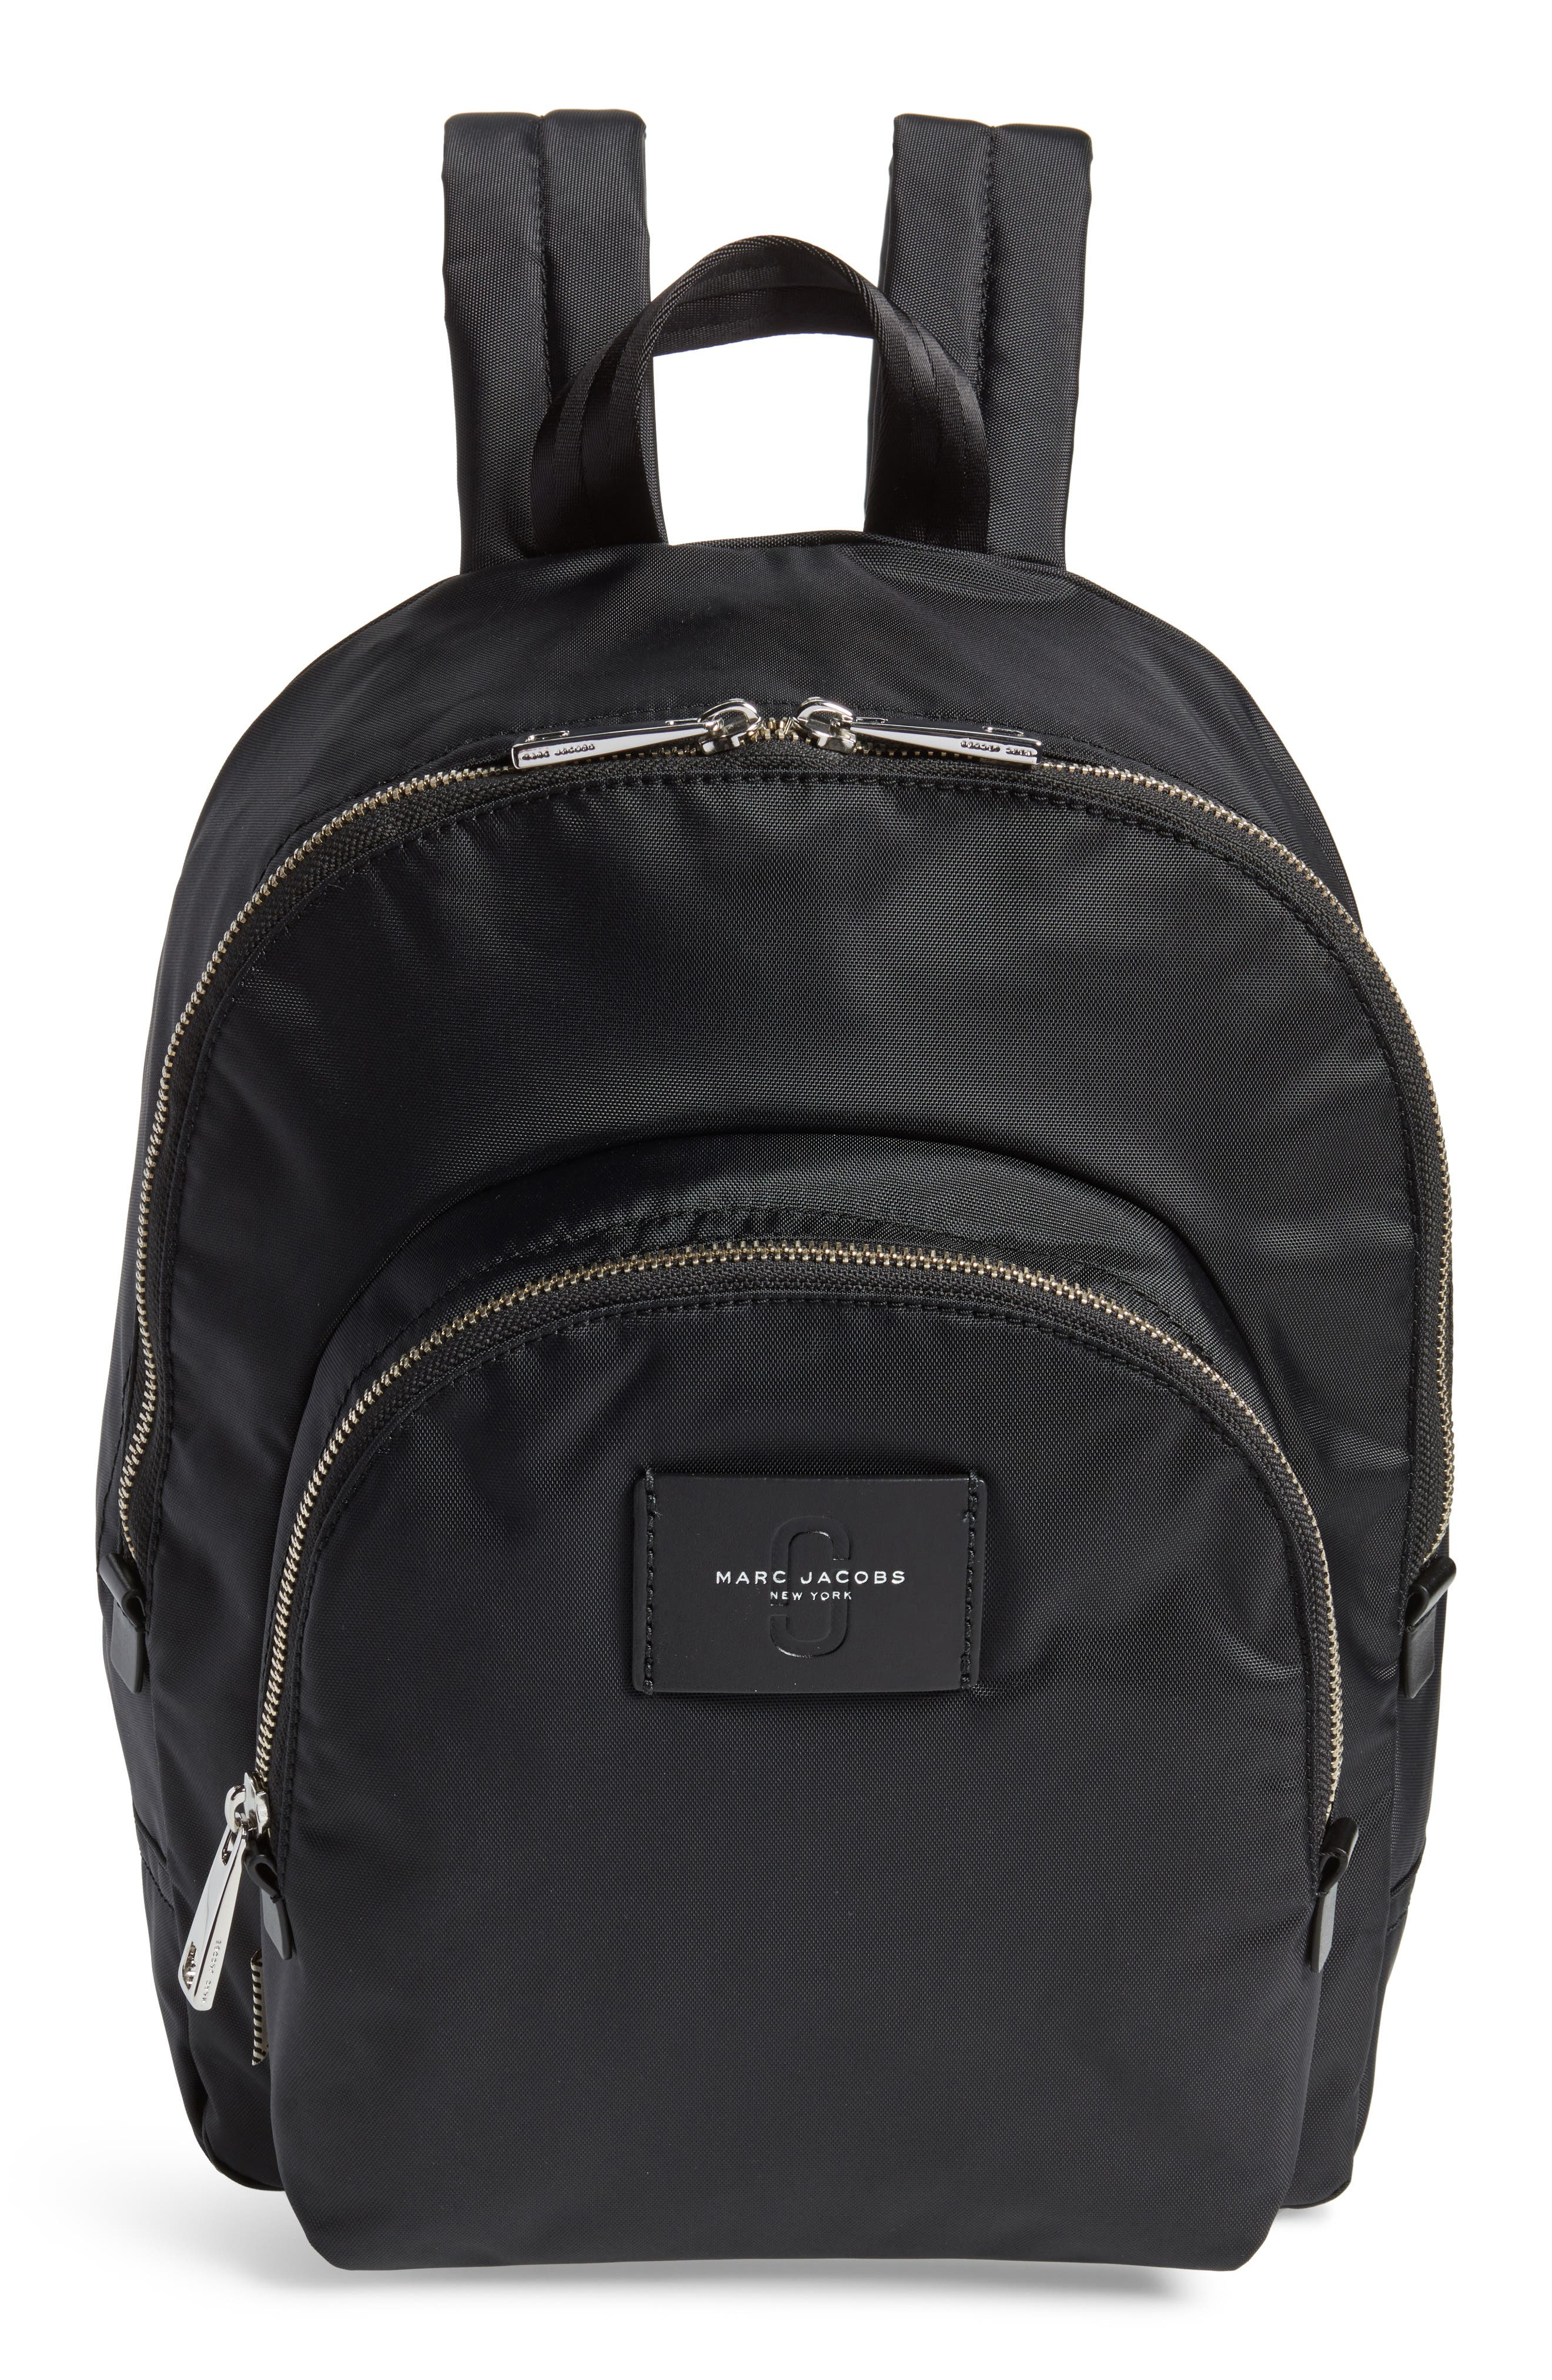 MARC JACOBS,                             Double Pack Nylon Backpack,                             Main thumbnail 1, color,                             001